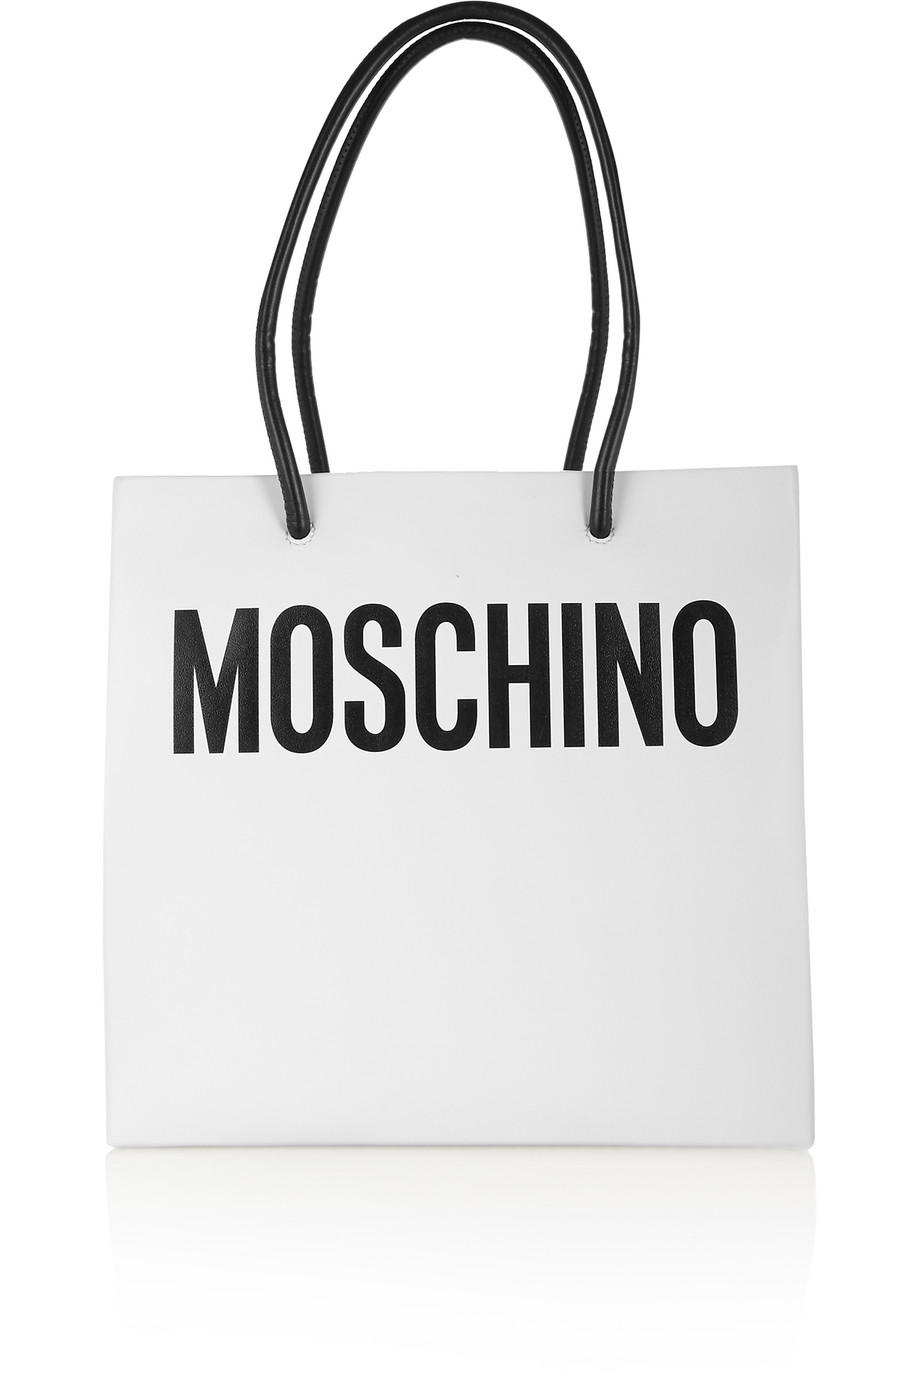 Moschino Printed Leather Tote, White, Women's